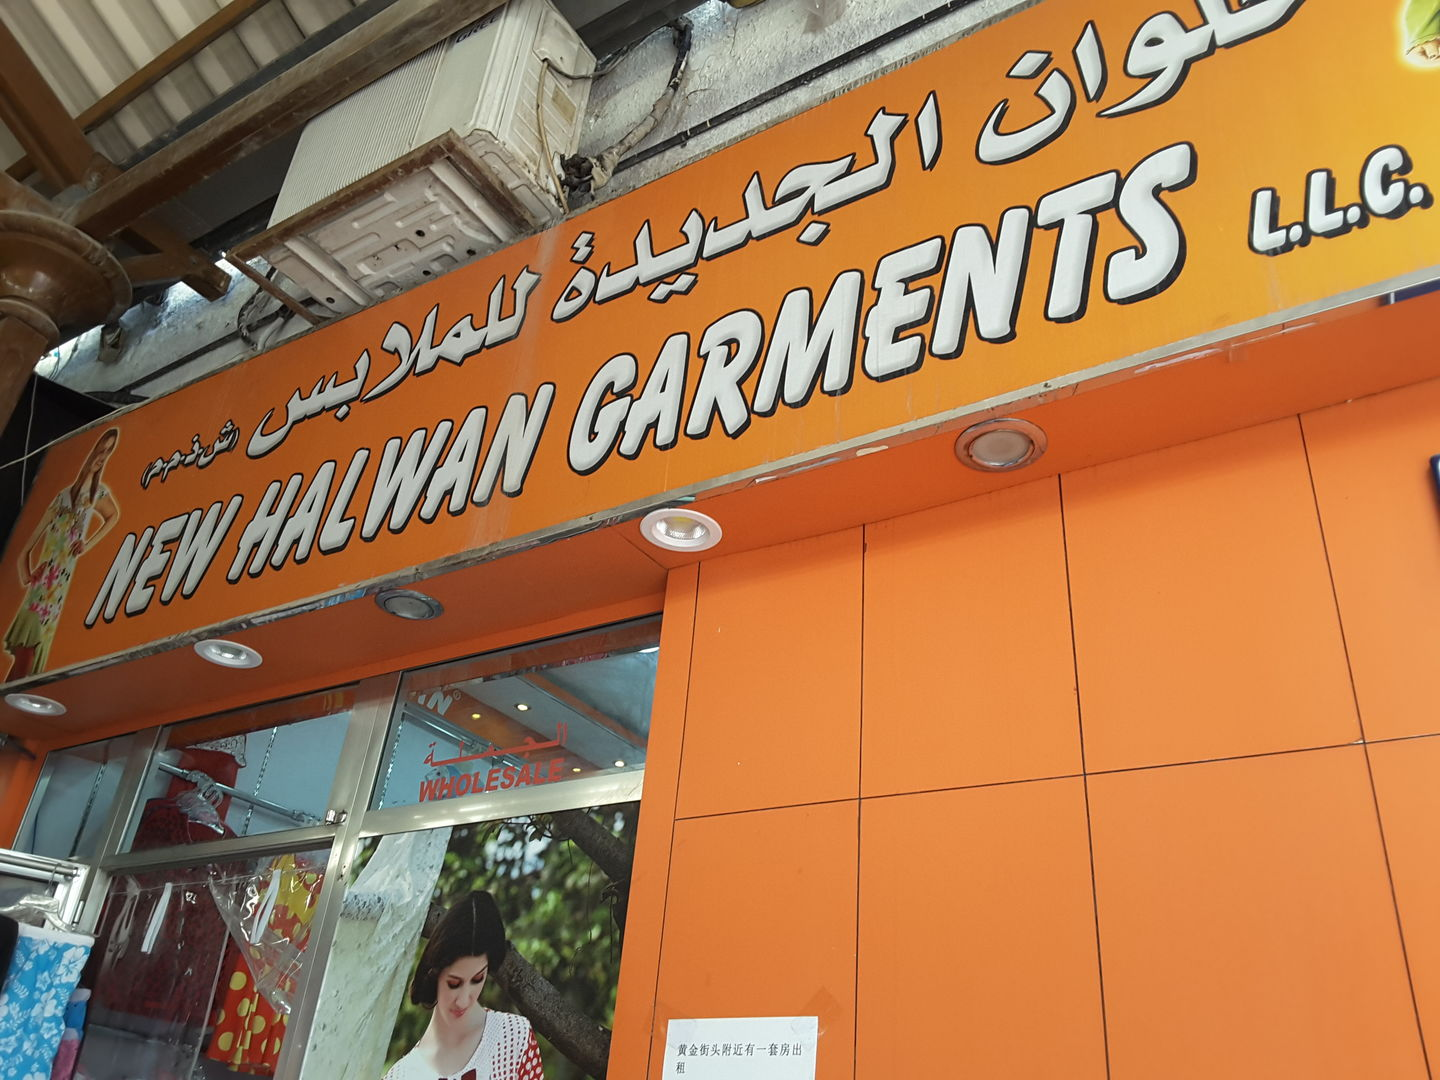 HiDubai-business-new-halwan-garments-b2b-services-distributors-wholesalers-al-ras-dubai-2